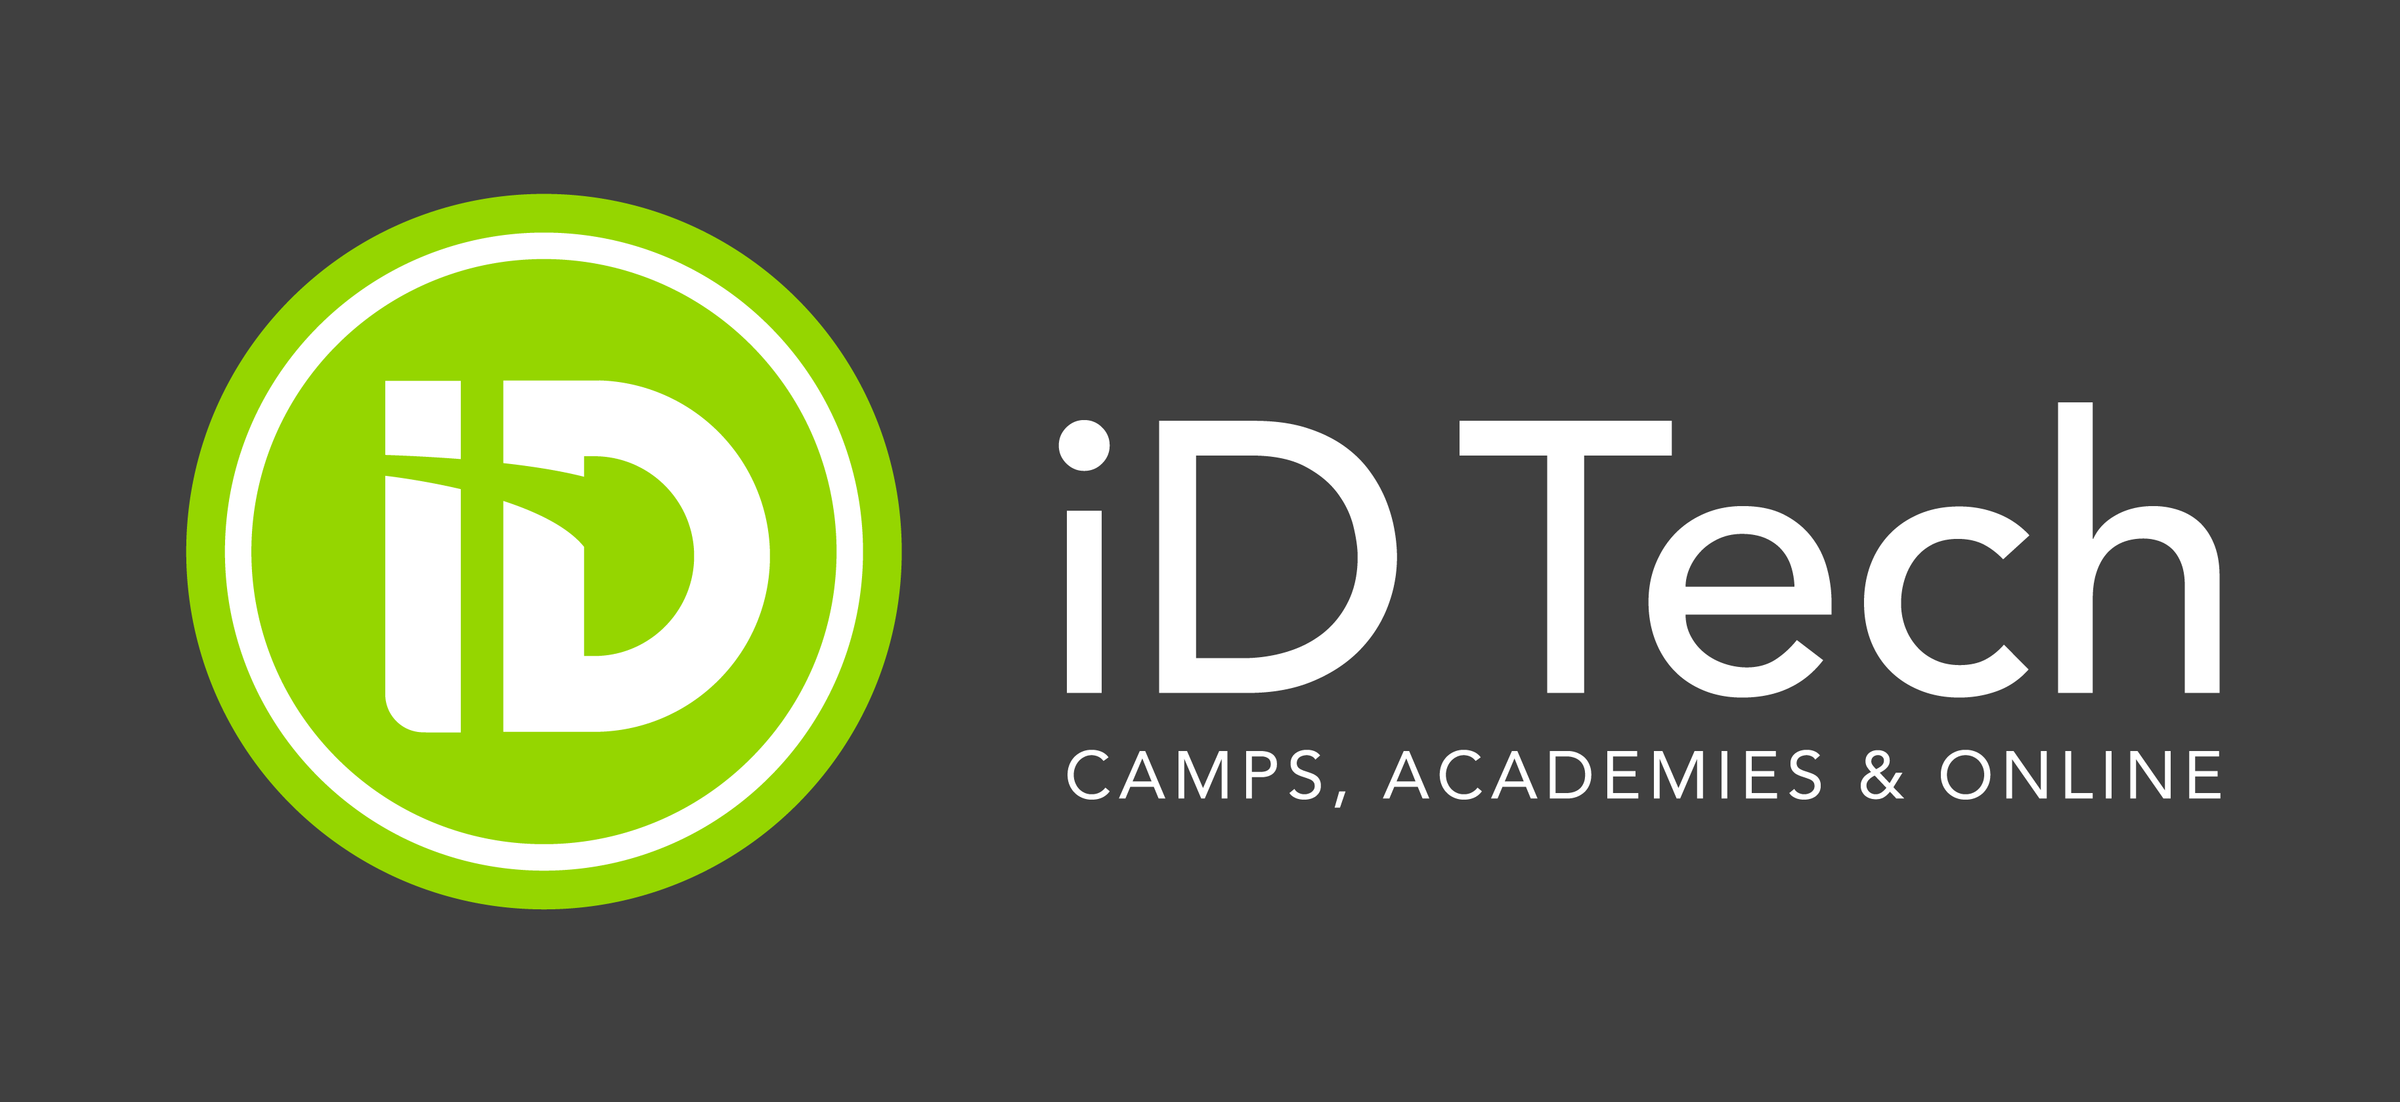 iD Tech Camps: #1 in STEM Education - Held at Cal State Fullerton